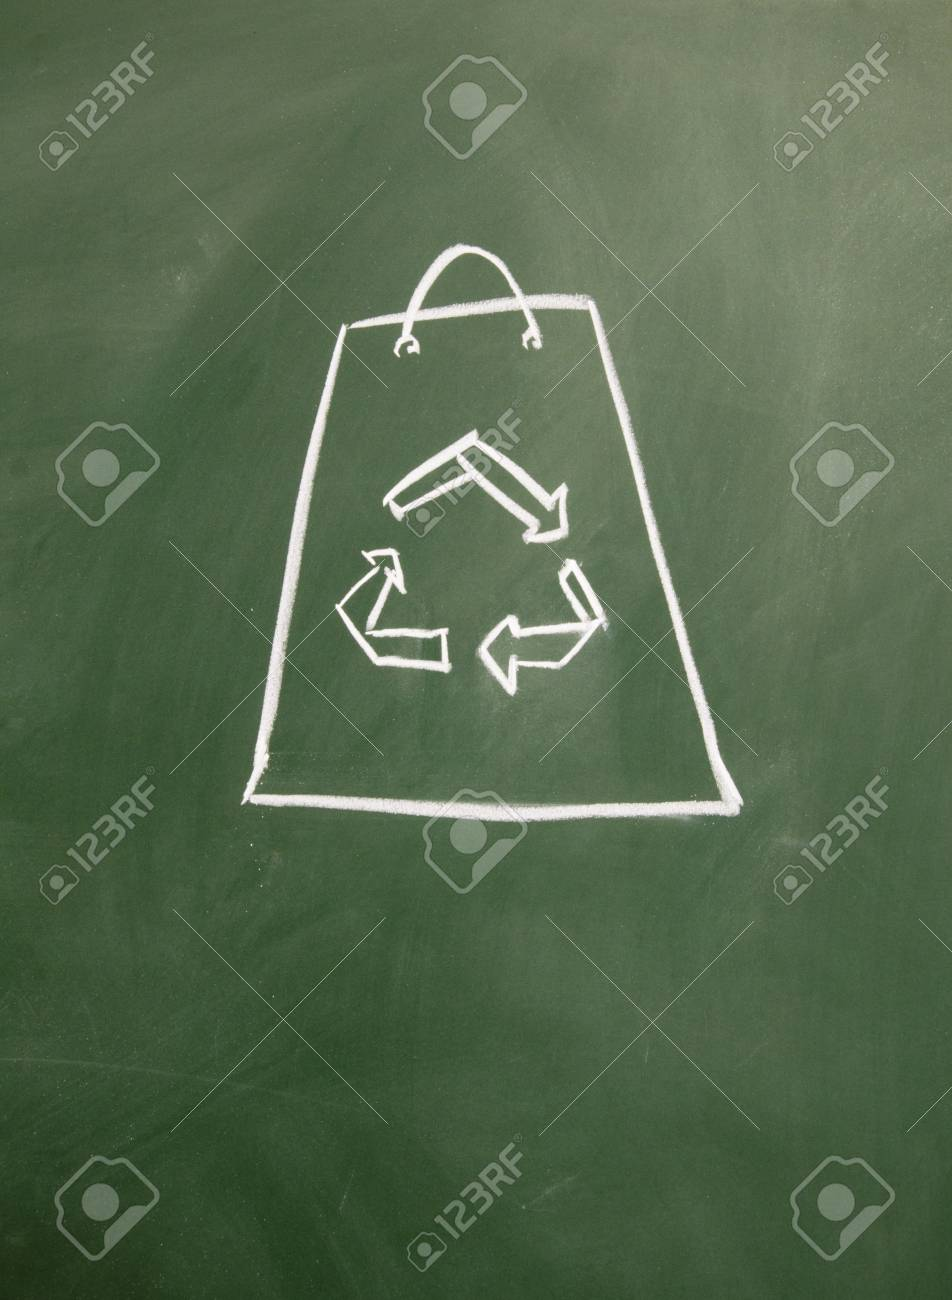 Reusable shopping bags drawn with chalk on blackboard Stock Photo - 12049295